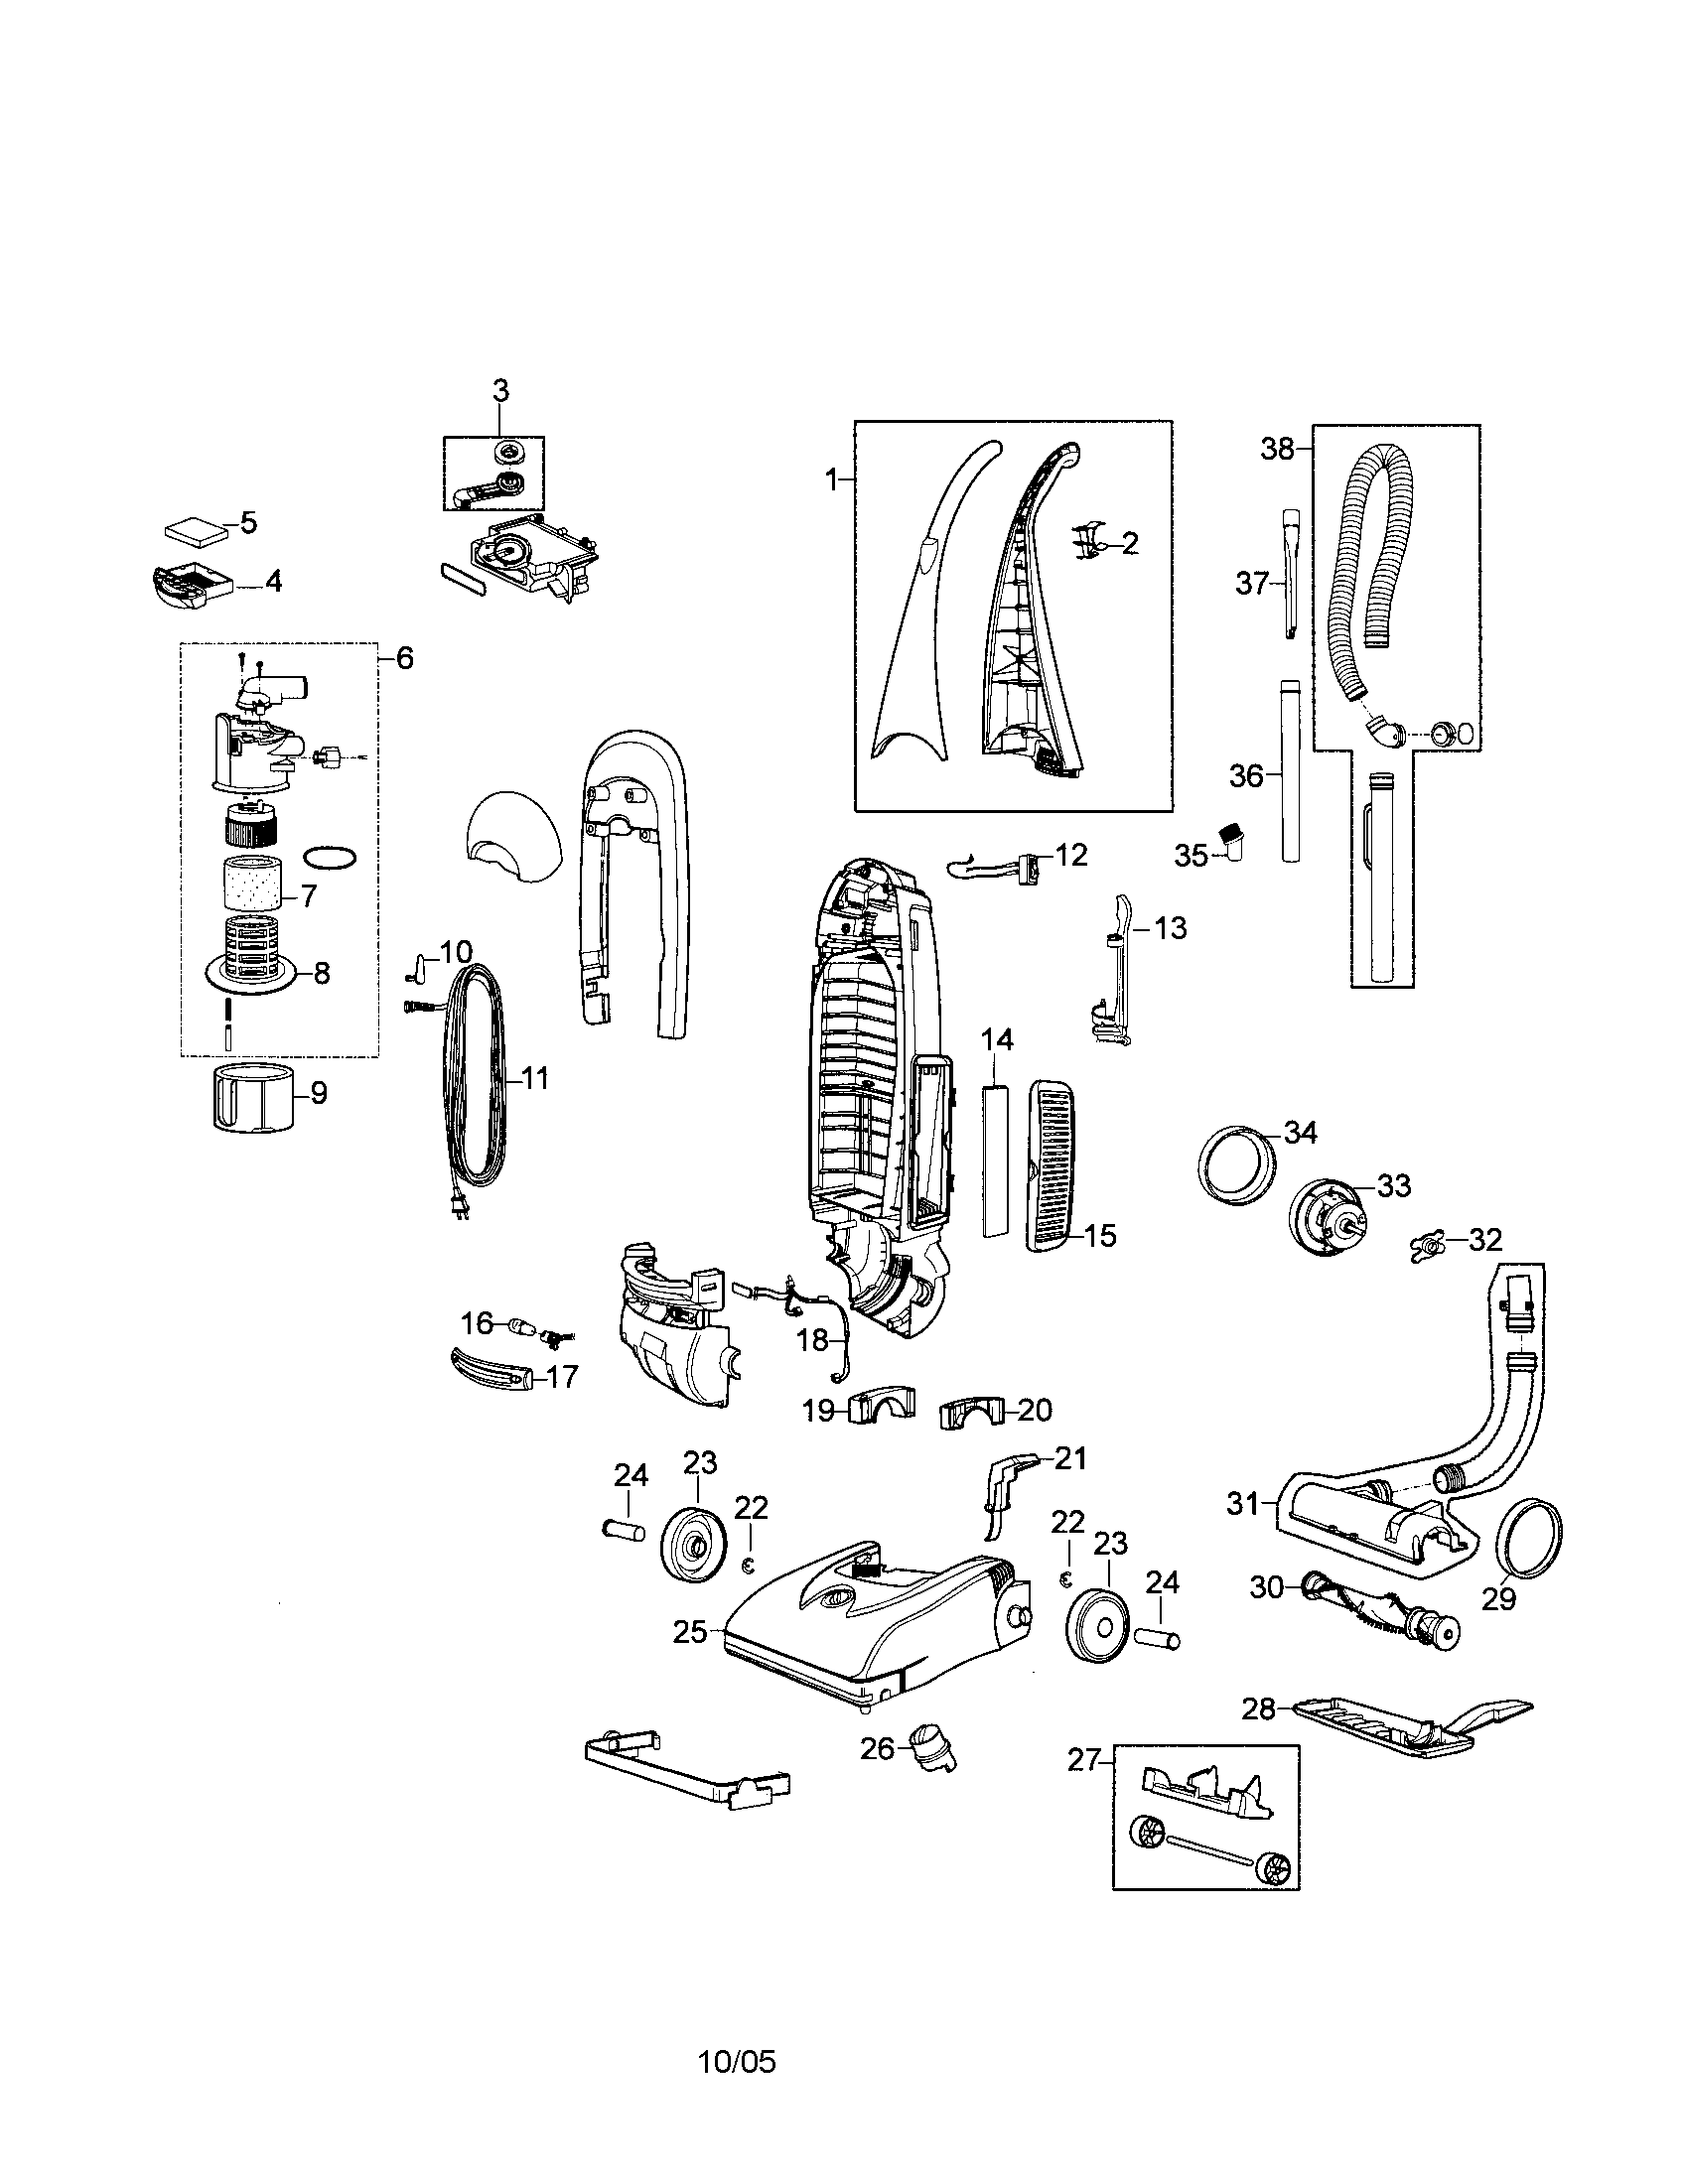 Bissell model 8975 vacuum, upright genuine parts